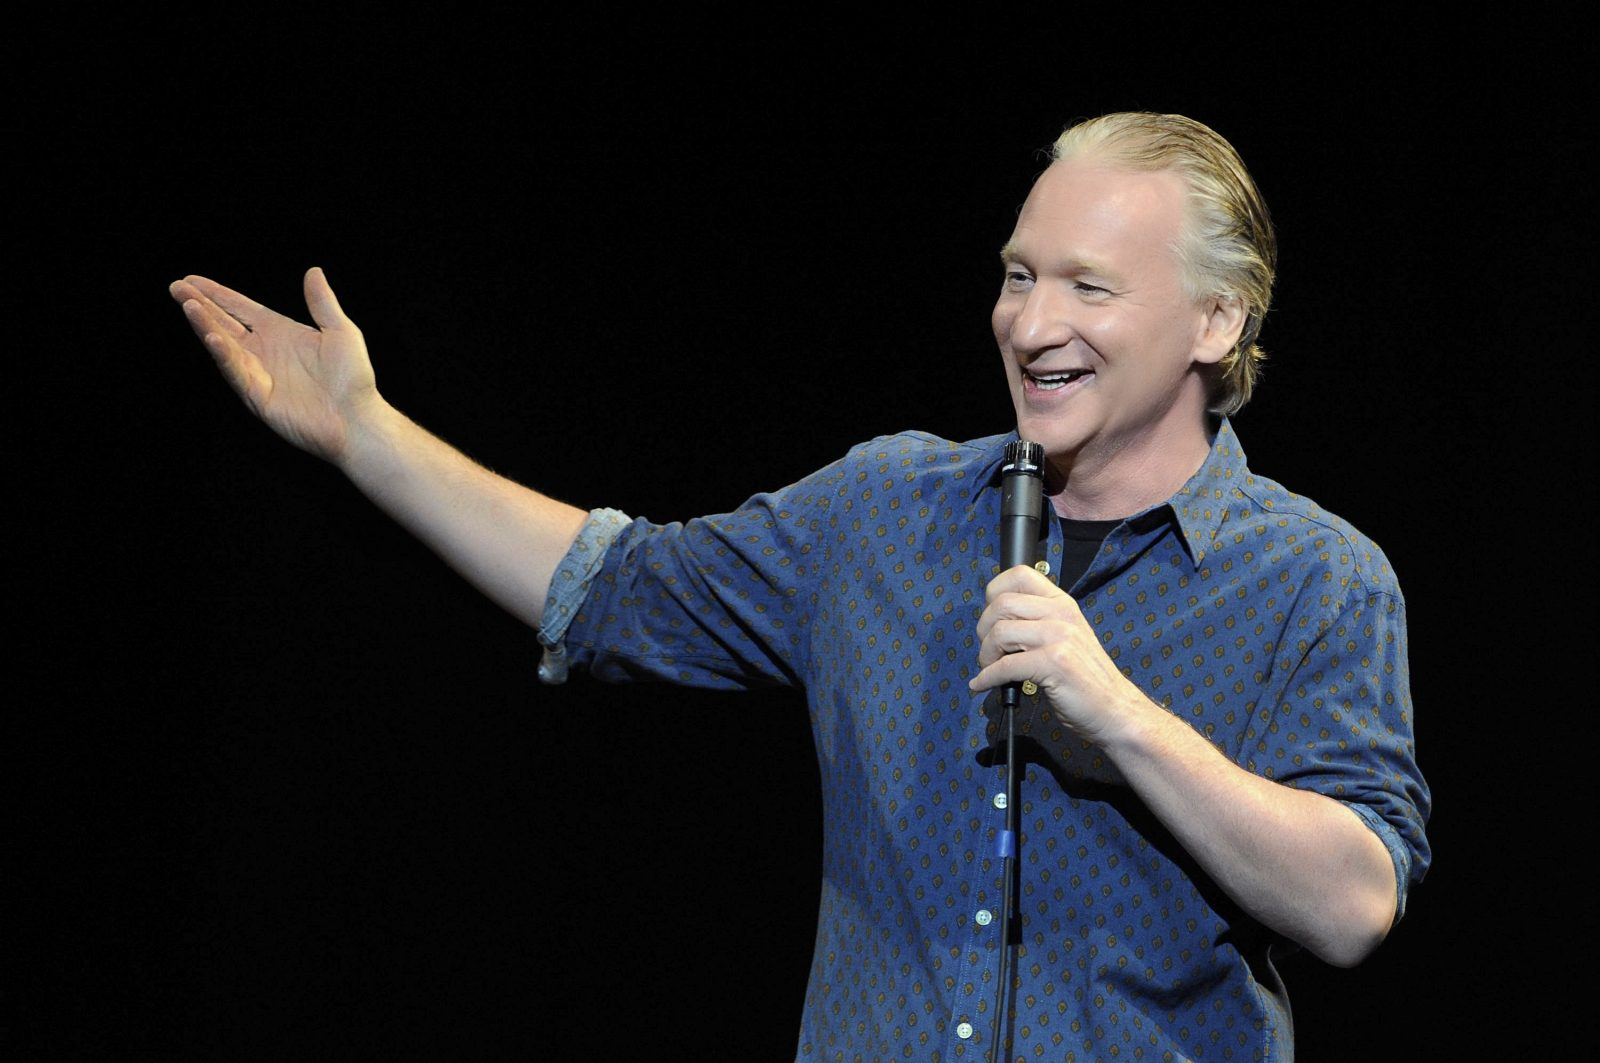 Bill Maher will perform at Shea's Performing Arts Center on Sept. 26. (Photo by David Becker/WireImage)